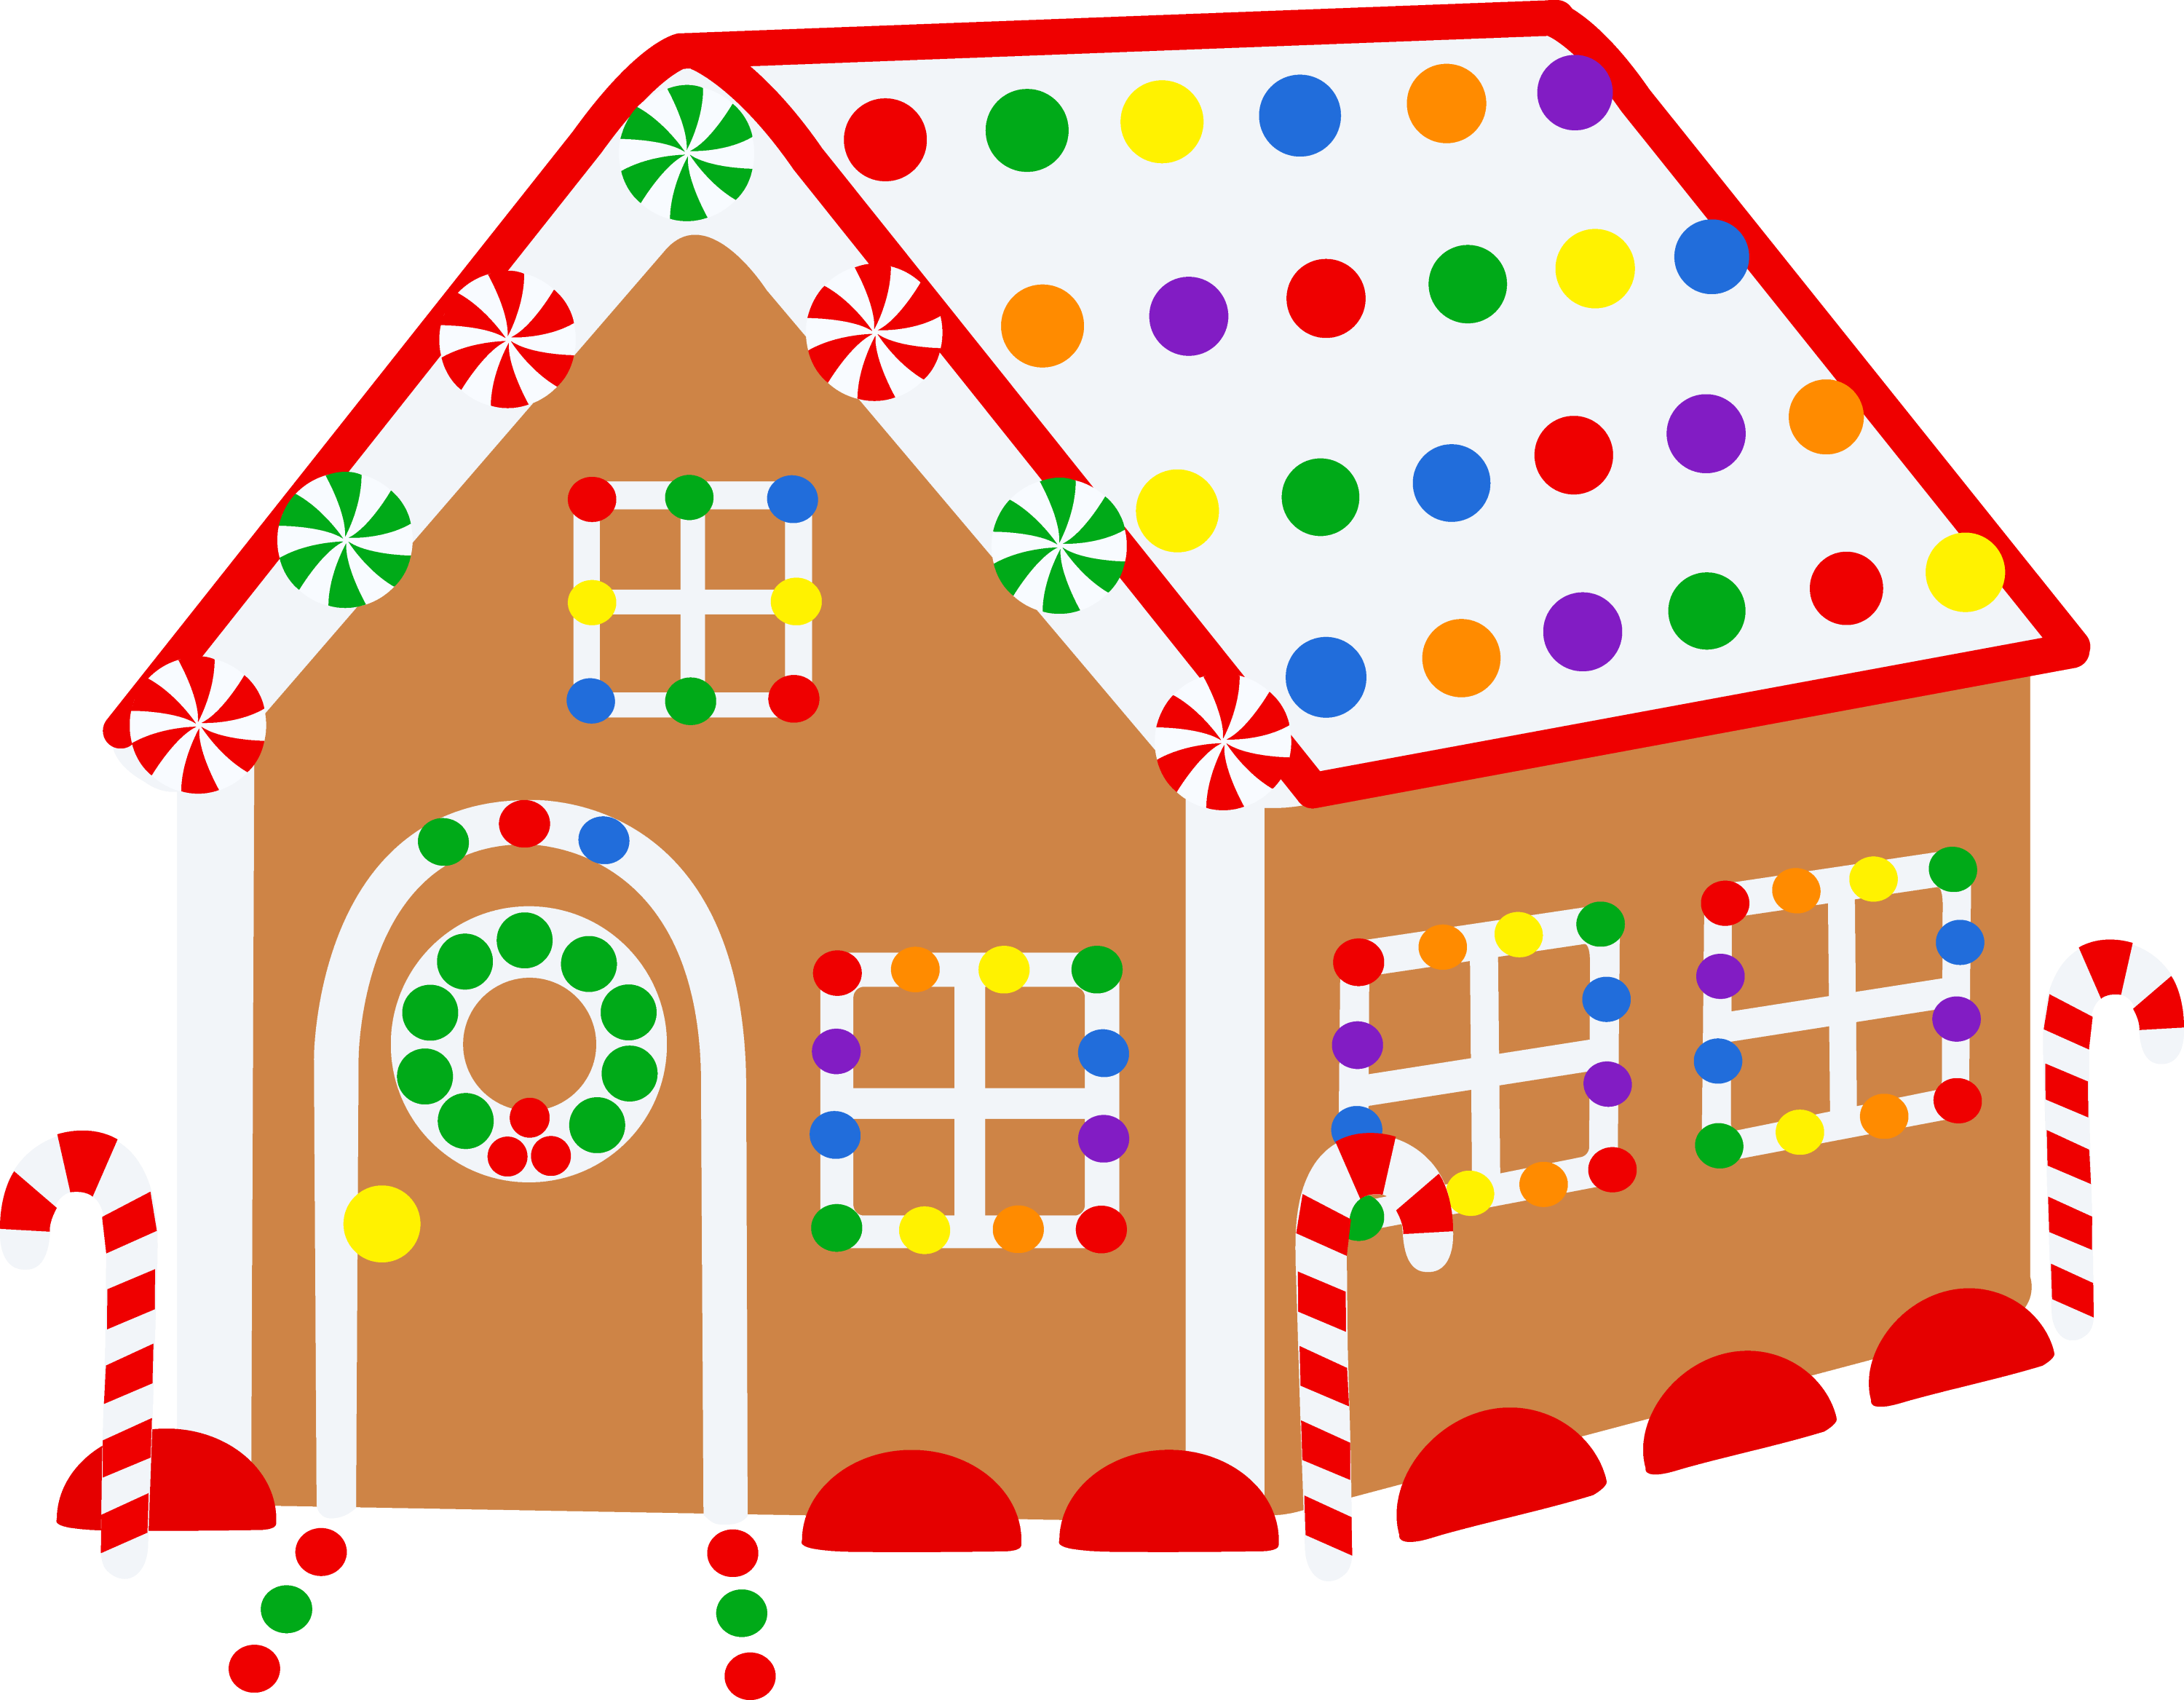 free gingerbread house clipart - photo #3